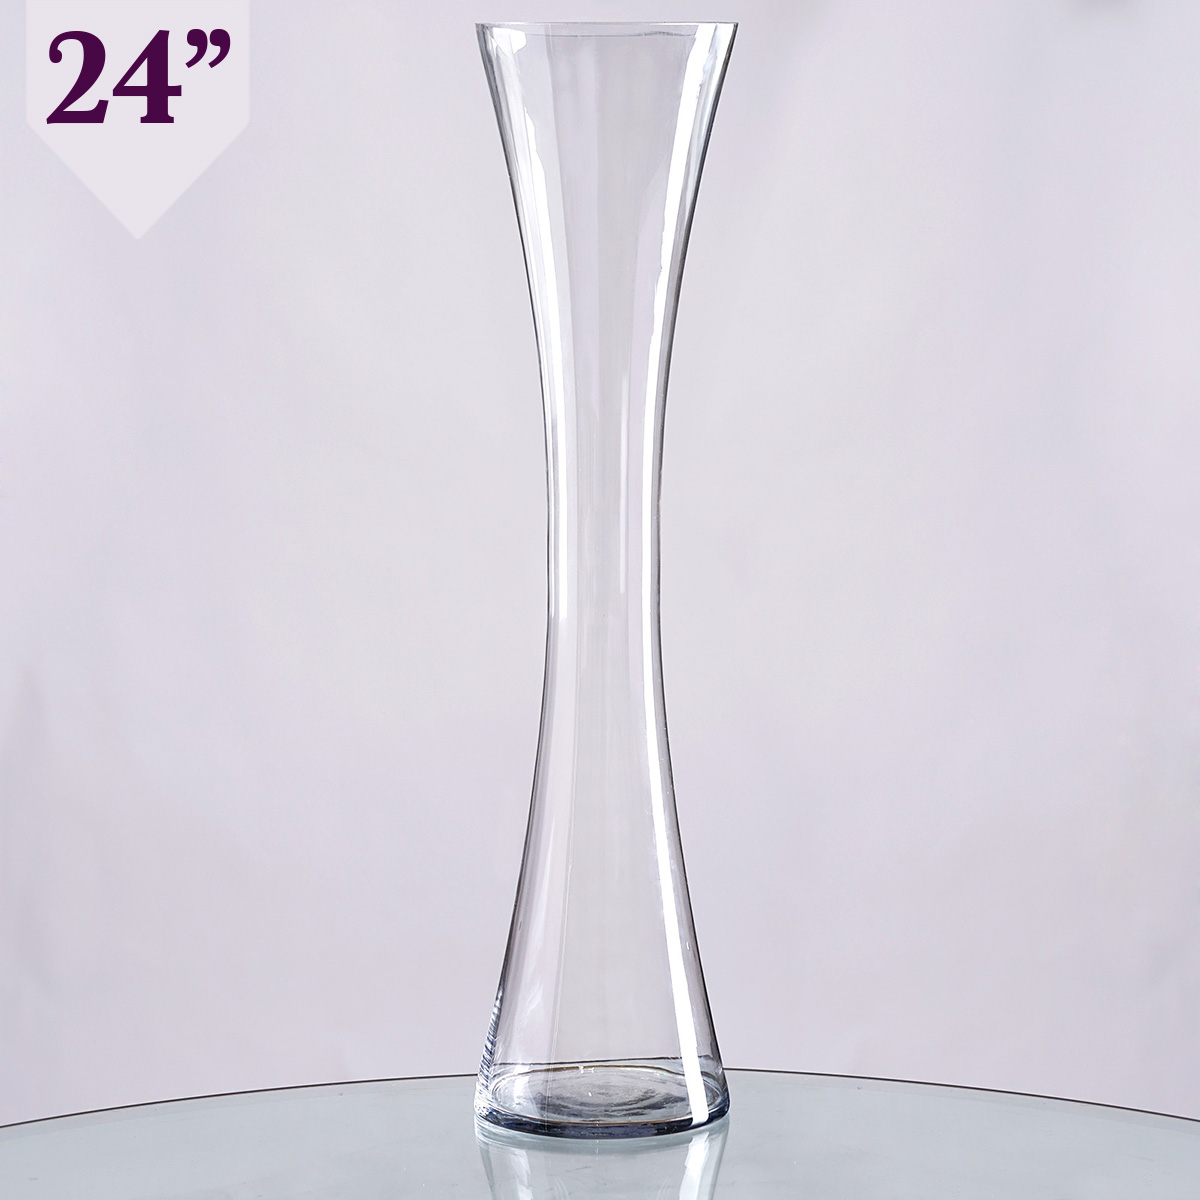 6 Pcs 24 Tall Hourglass Clear Glass Vases Wedding Party Centerpieces Wholesale 688098795222 Ebay